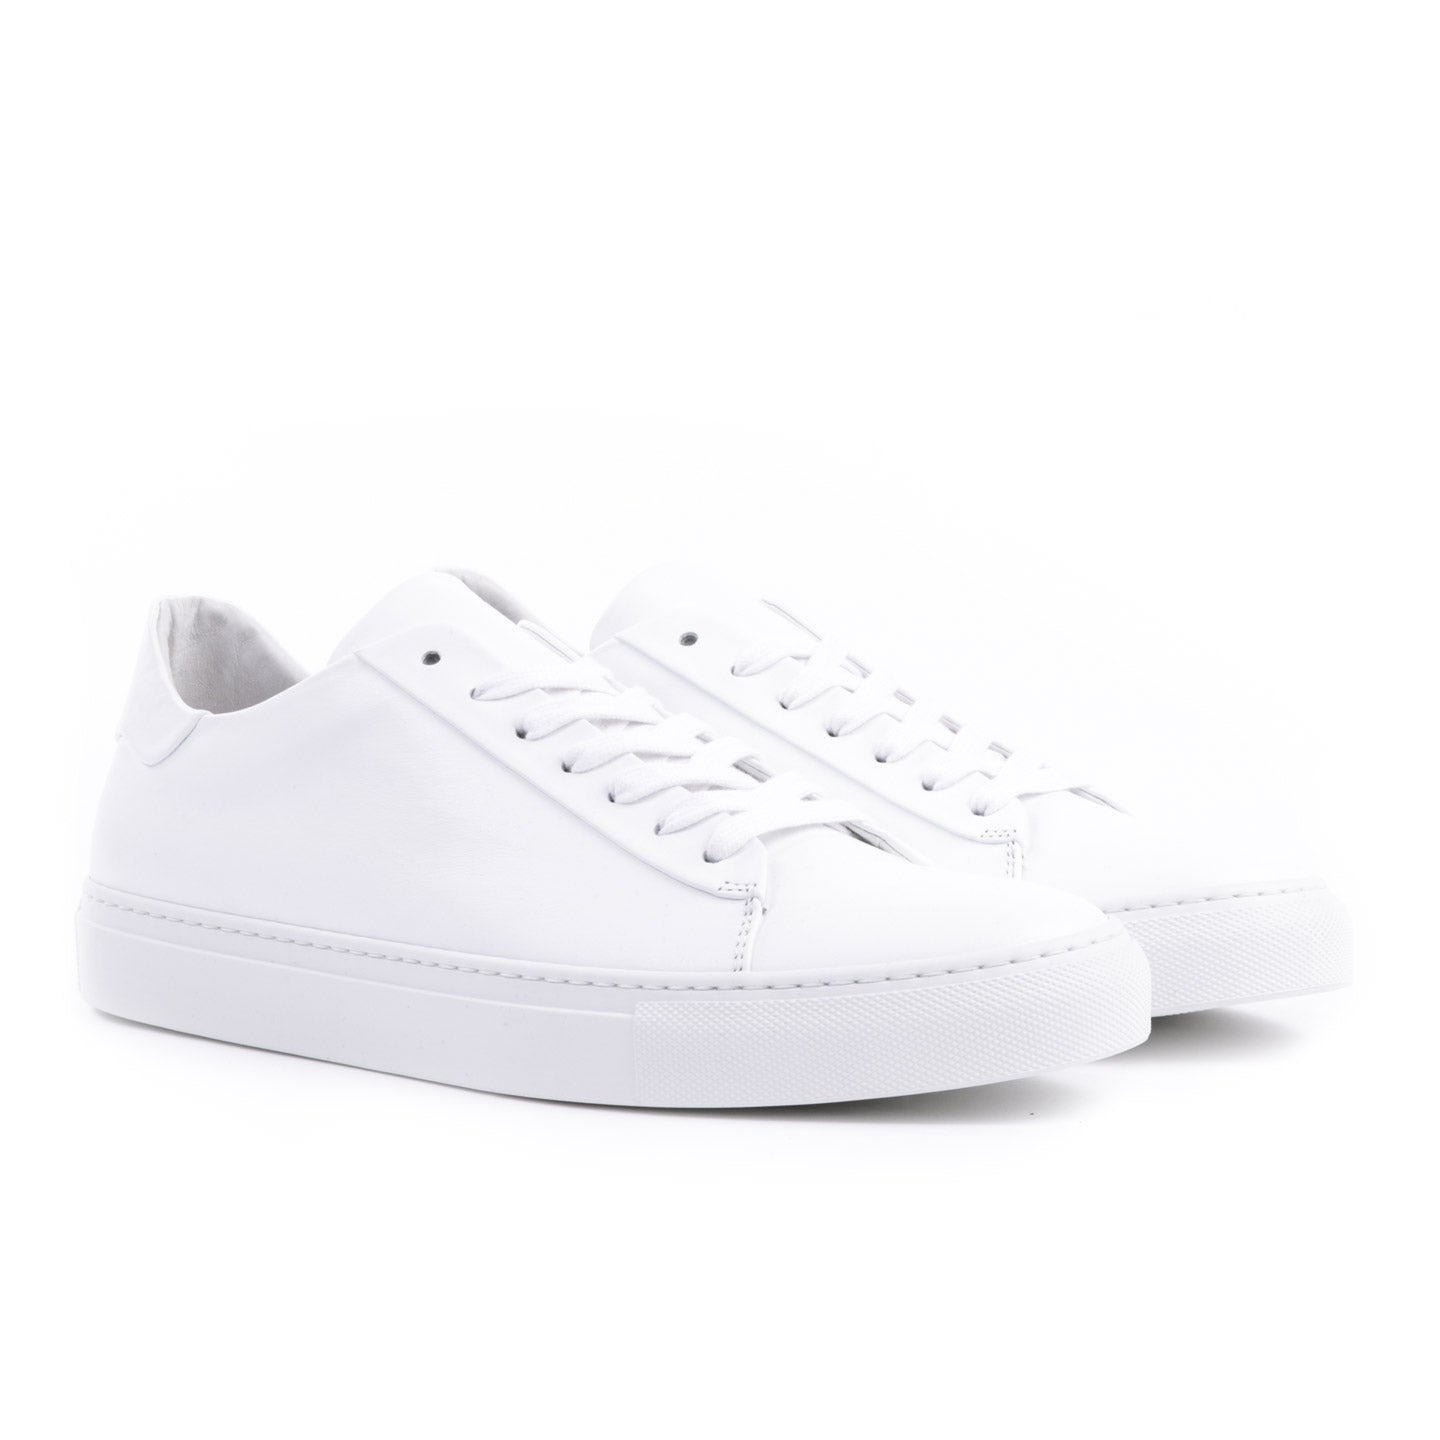 WINGS + HORNS COURT LOW SOFTY LEATHER WHITE / WHITE